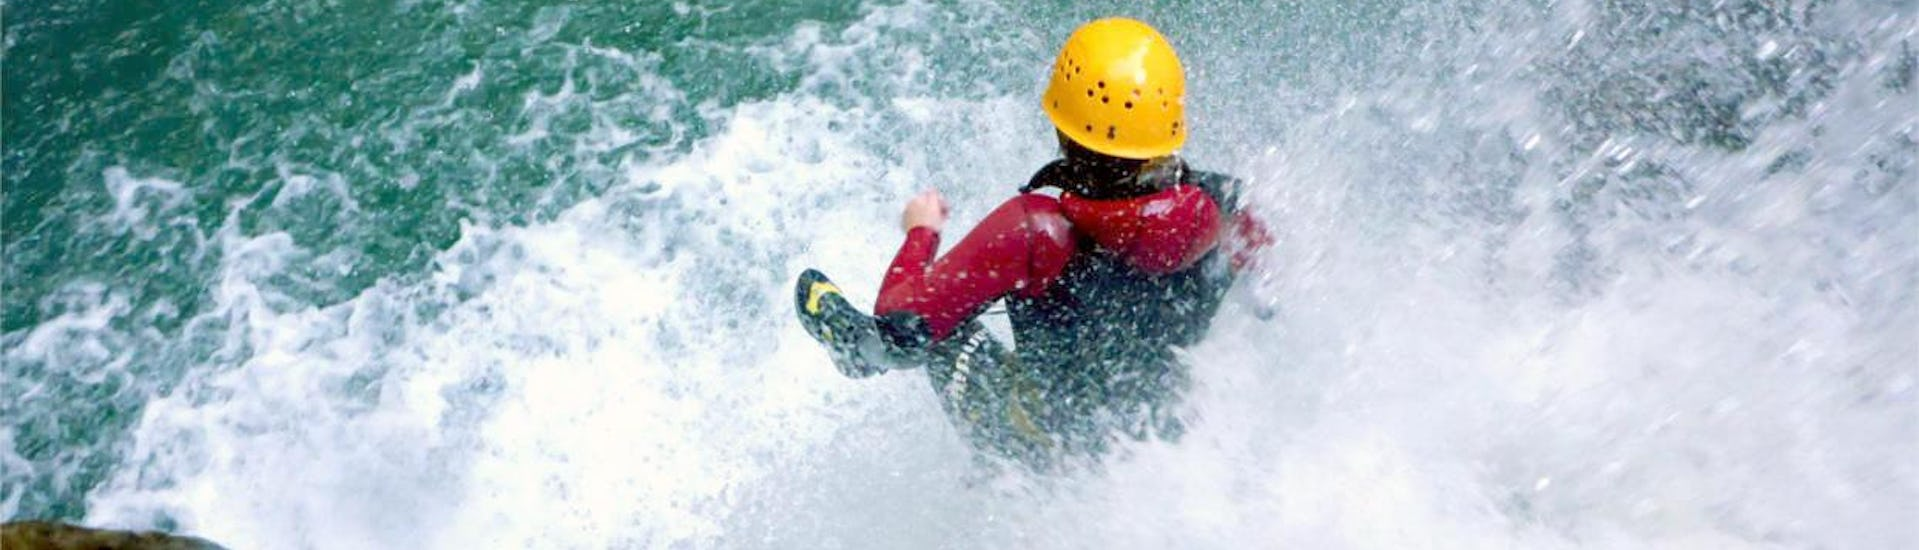 Canyoning Fun in Allgäu for Beginners & Experienced